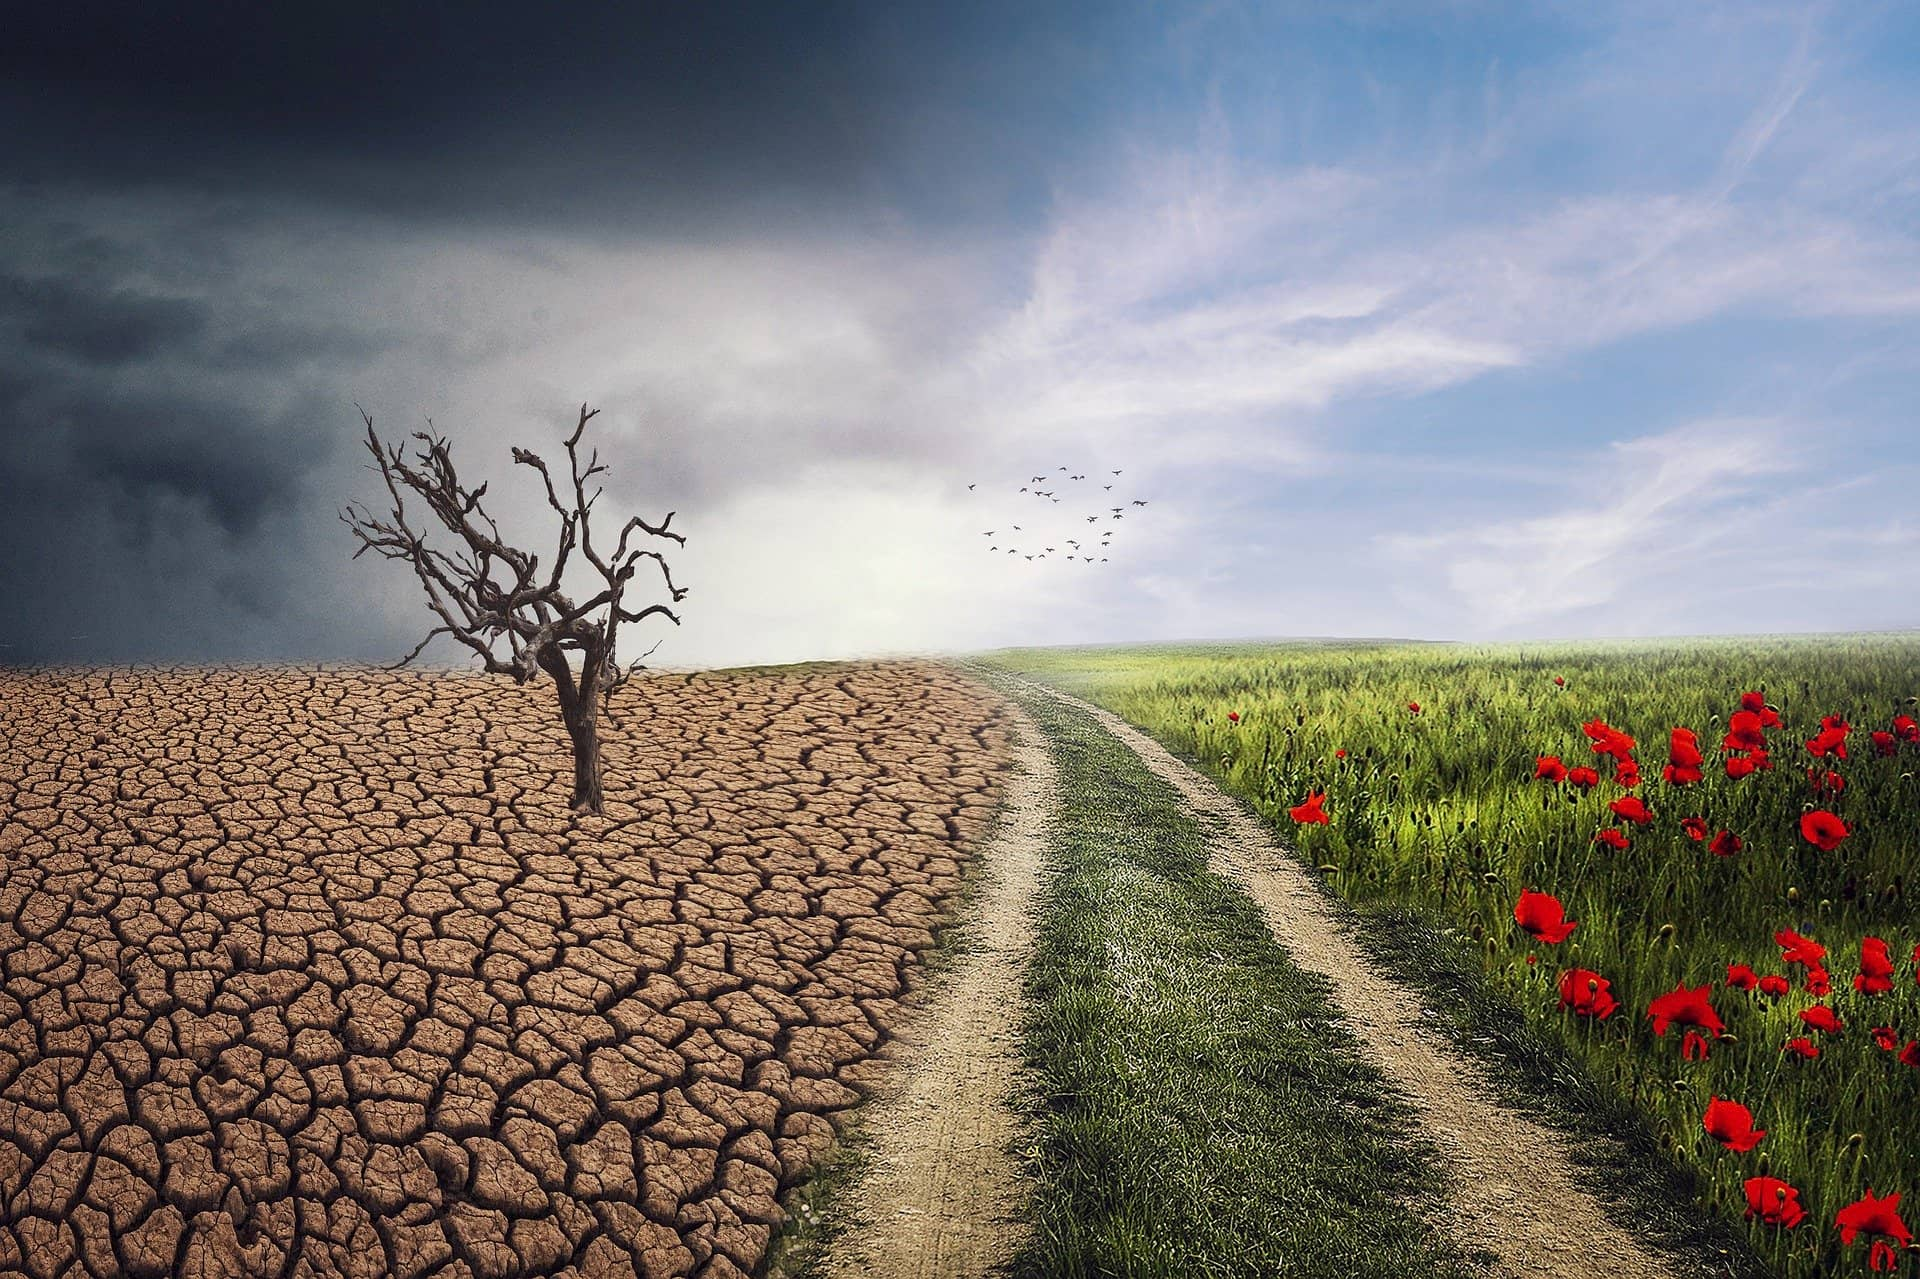 image showing the horror of climate change on a field or the benefit of reducing CO2 and restoring the balance of nature